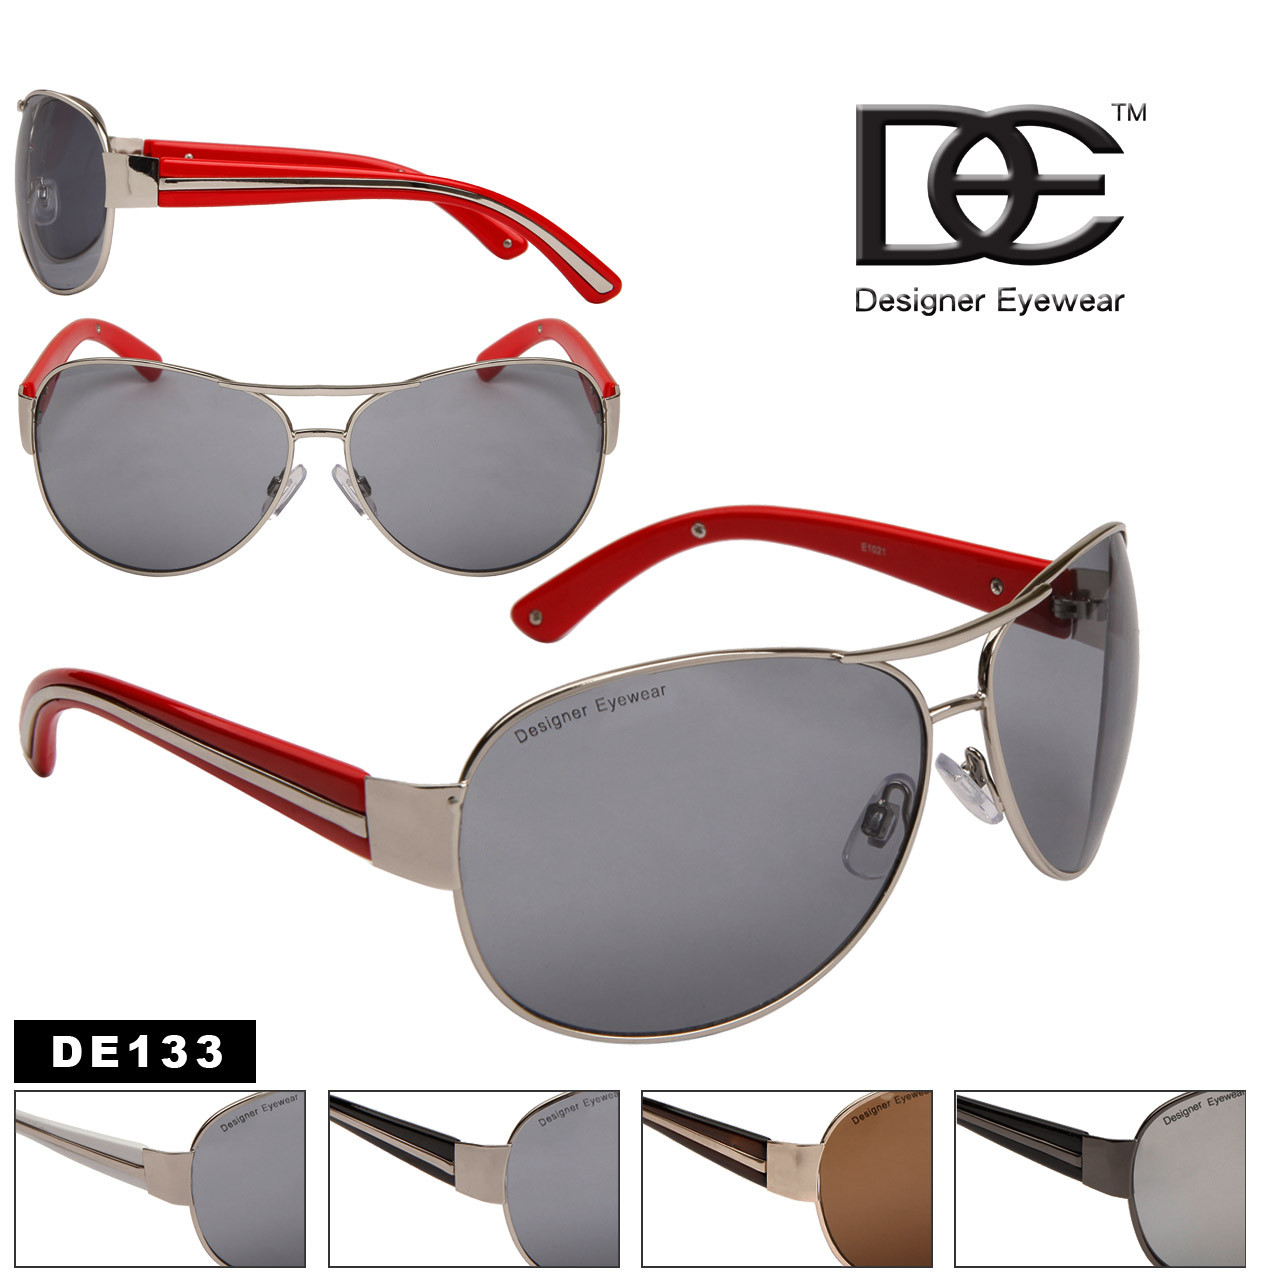 Wholesale Aviator Sunglasses DE133